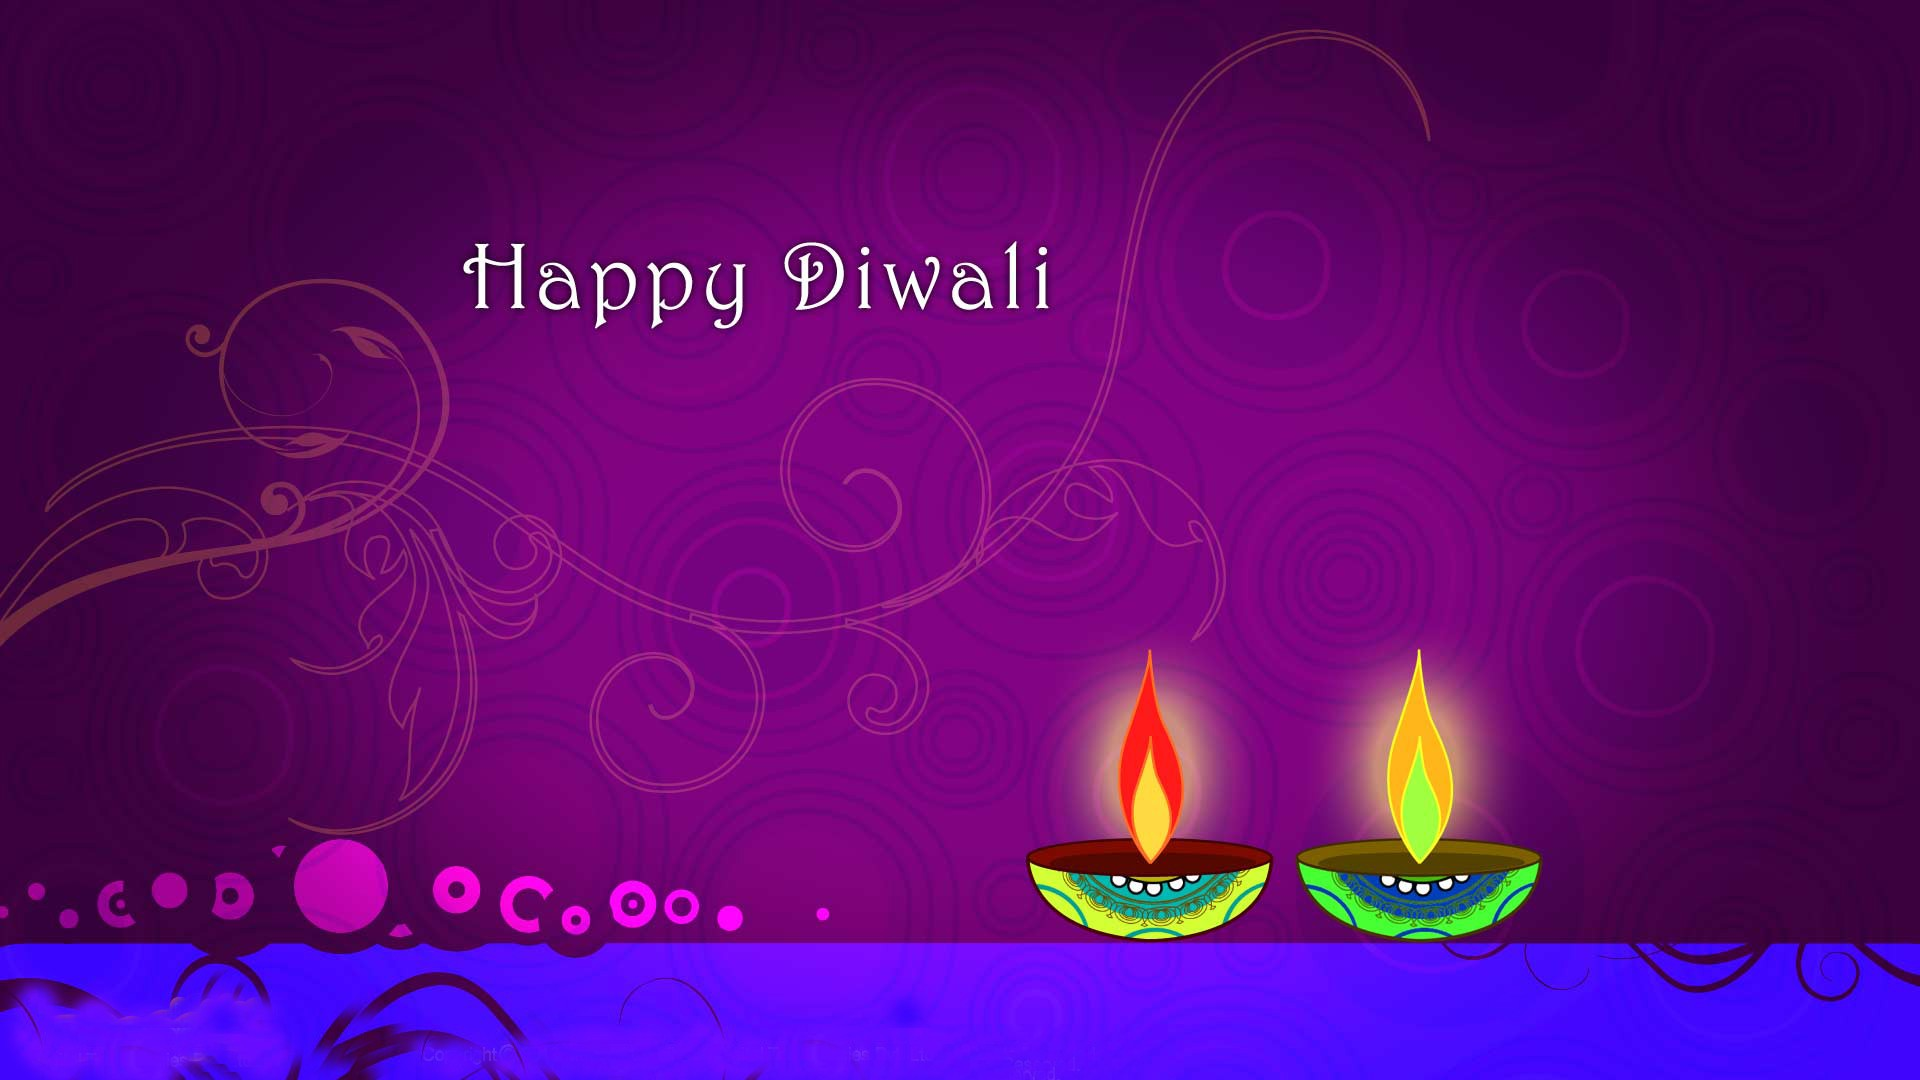 Heart Wallpaper With Quotes In Hindi 60 Best Diwali 2017 Wishes Pictures And Images